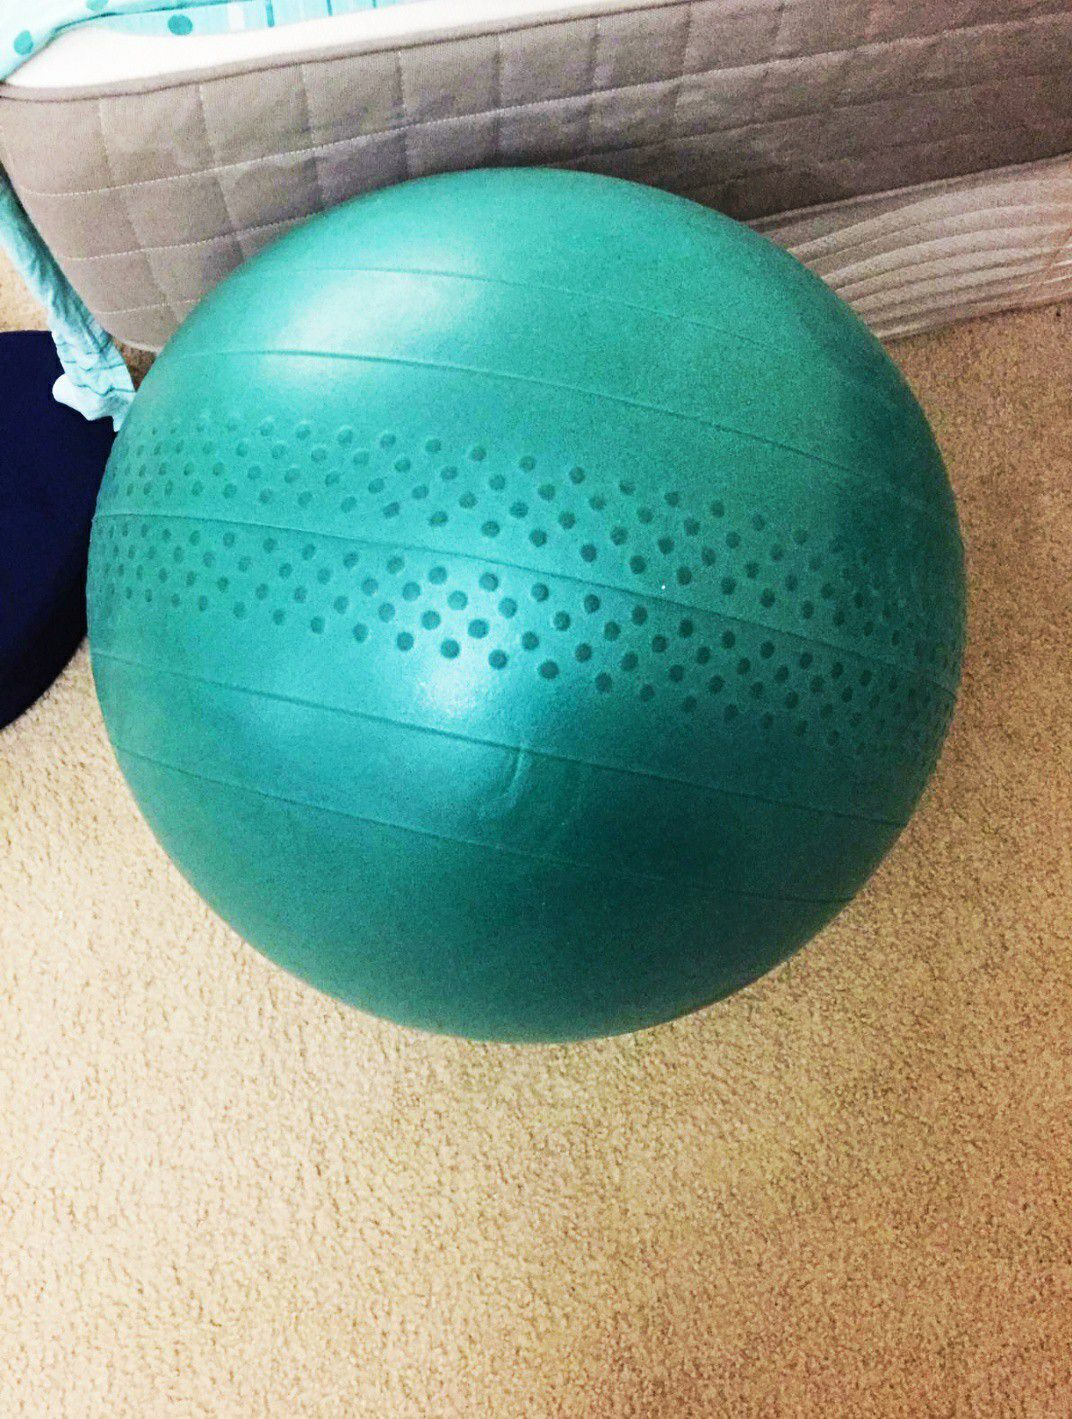 NEW: EXERCISE BALL WITH INFLATOR